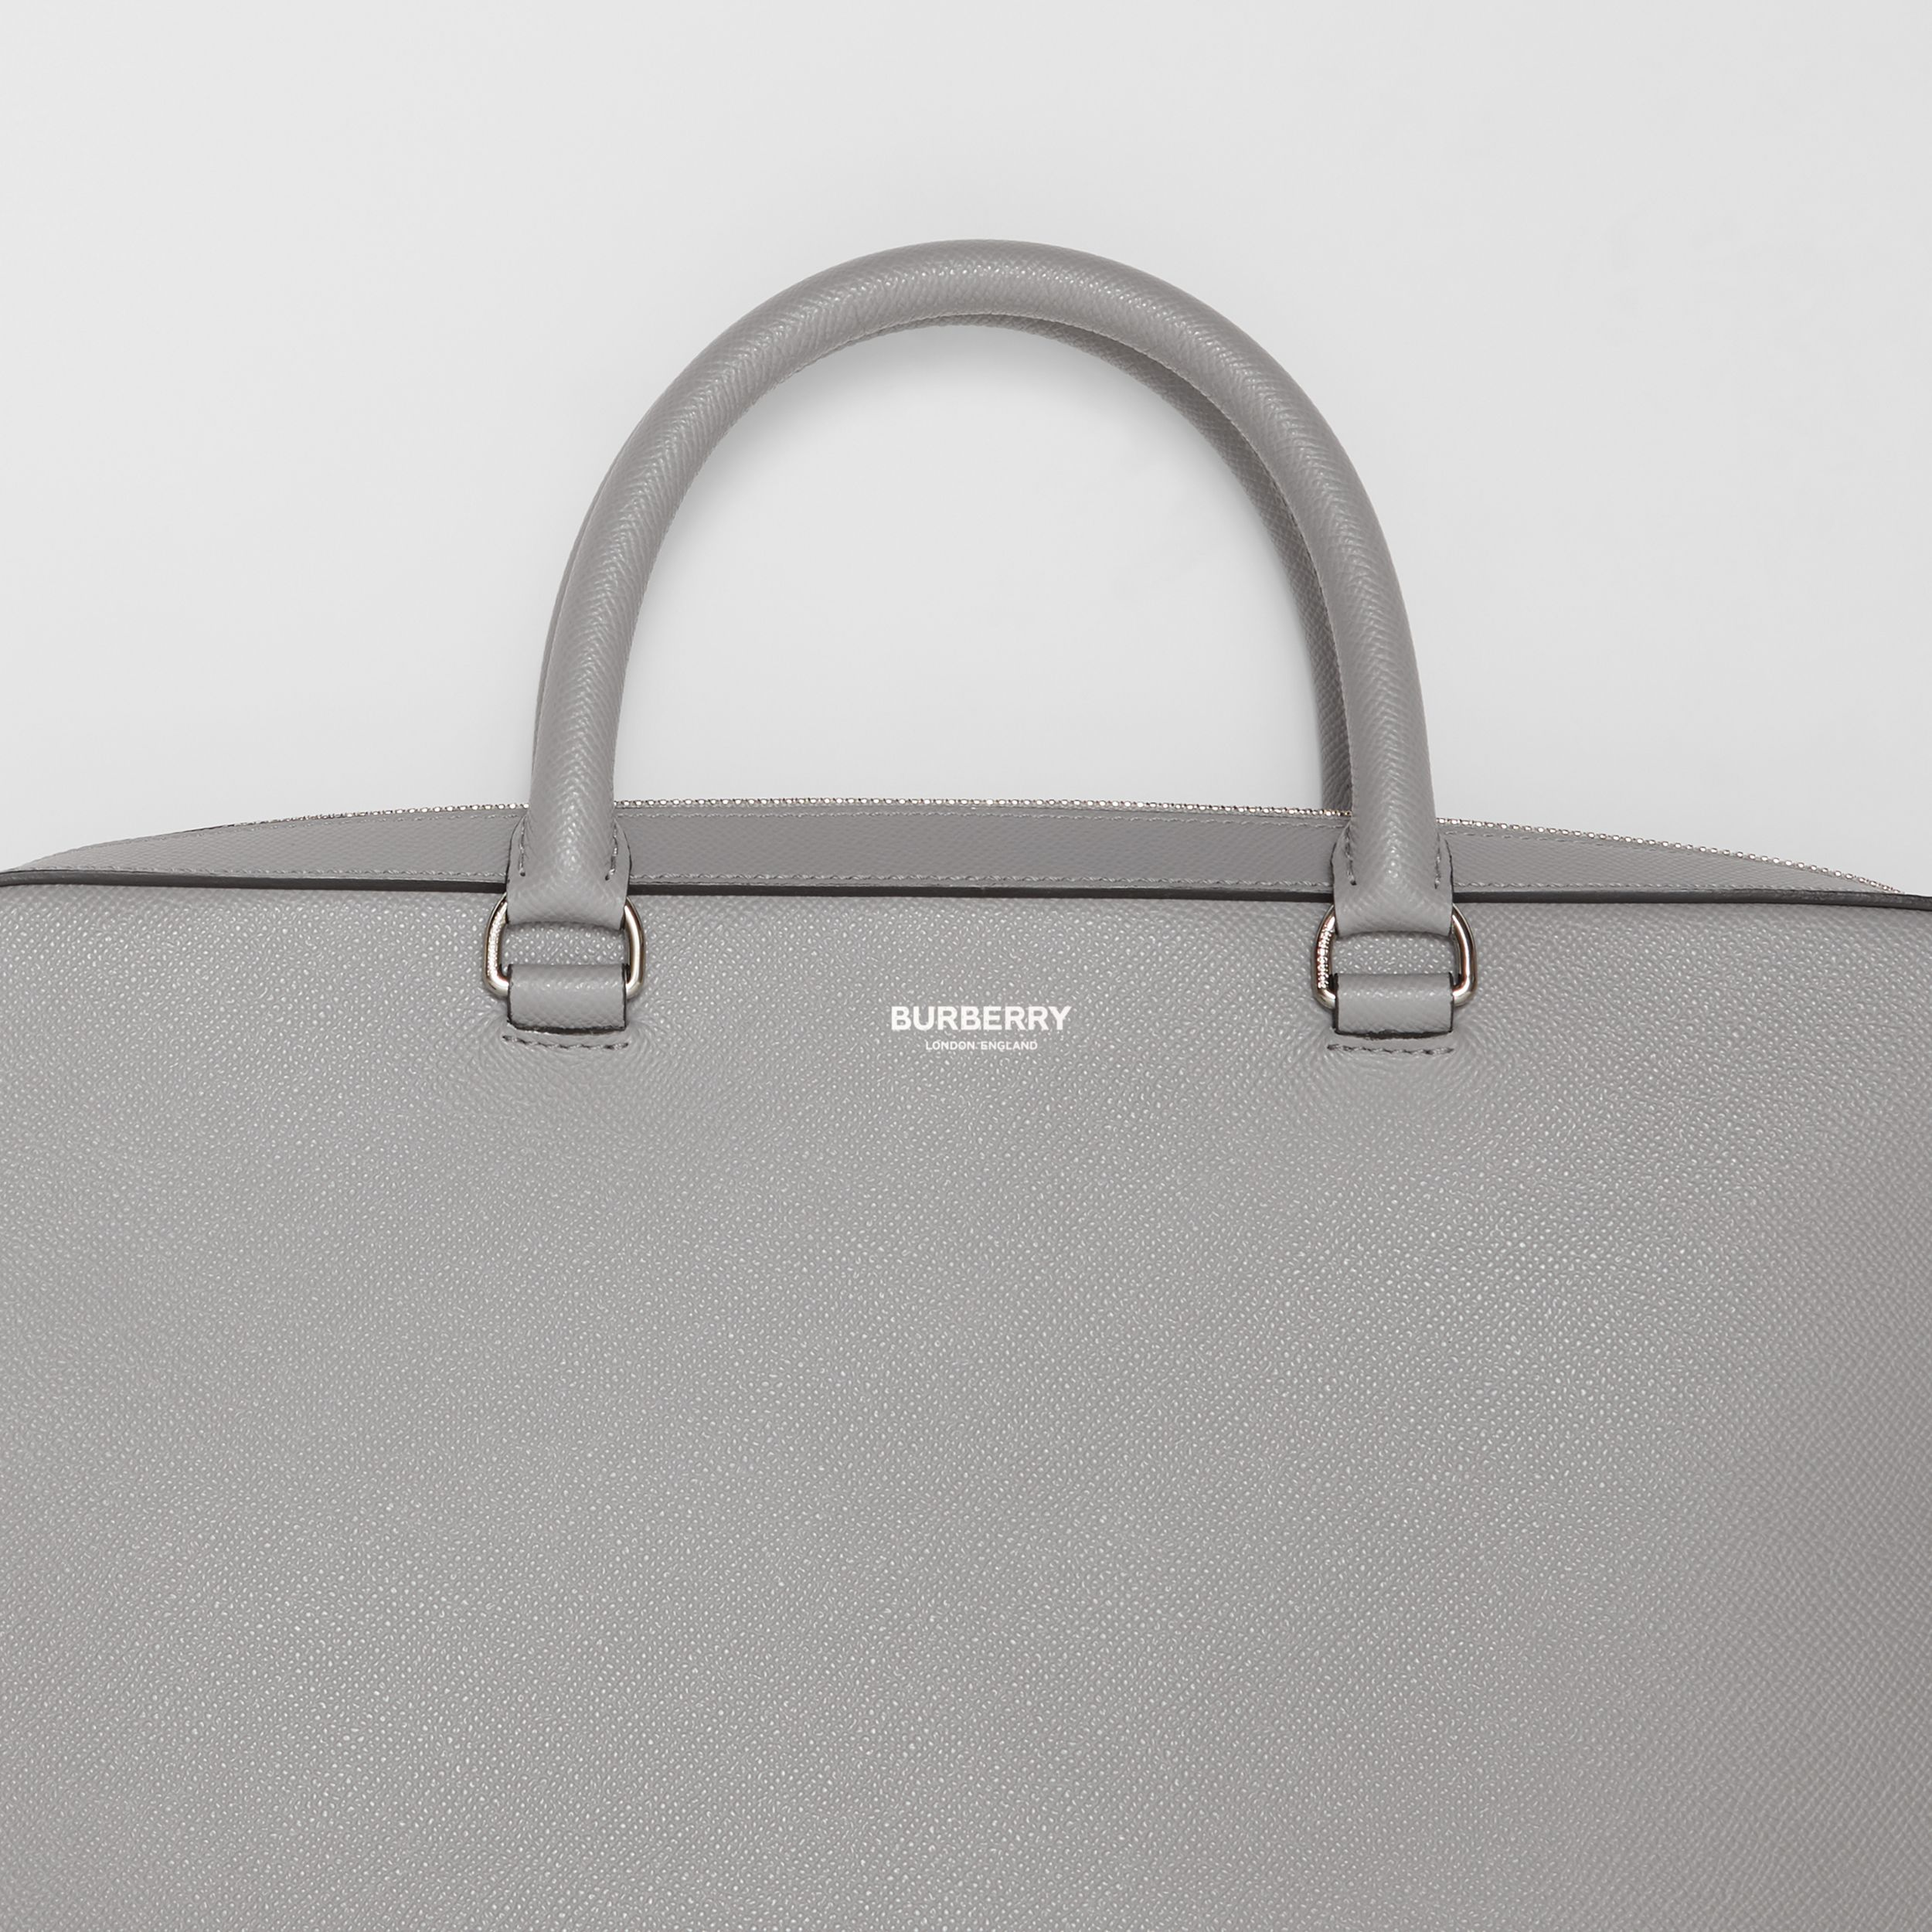 Grainy Leather Briefcase in Cloud Grey - Men | Burberry Hong Kong S.A.R. - 2